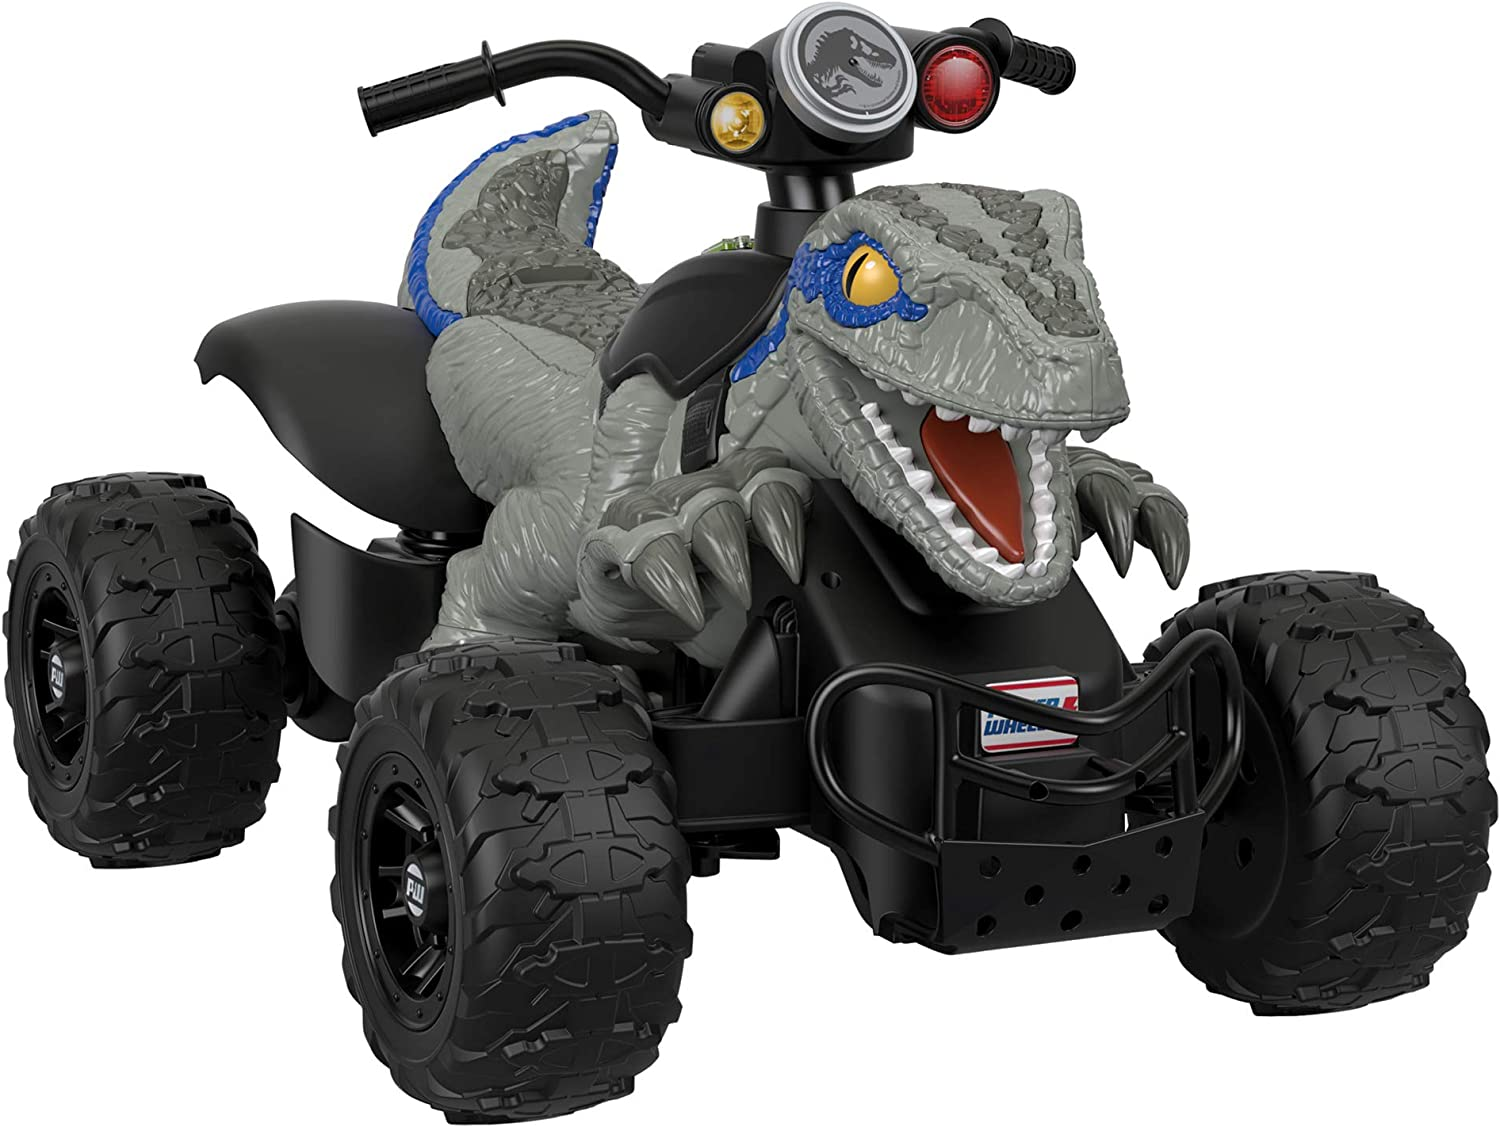 50+ Best Gift Ideas & Toys for 4 Year Old Boys (2020 Updated) 39